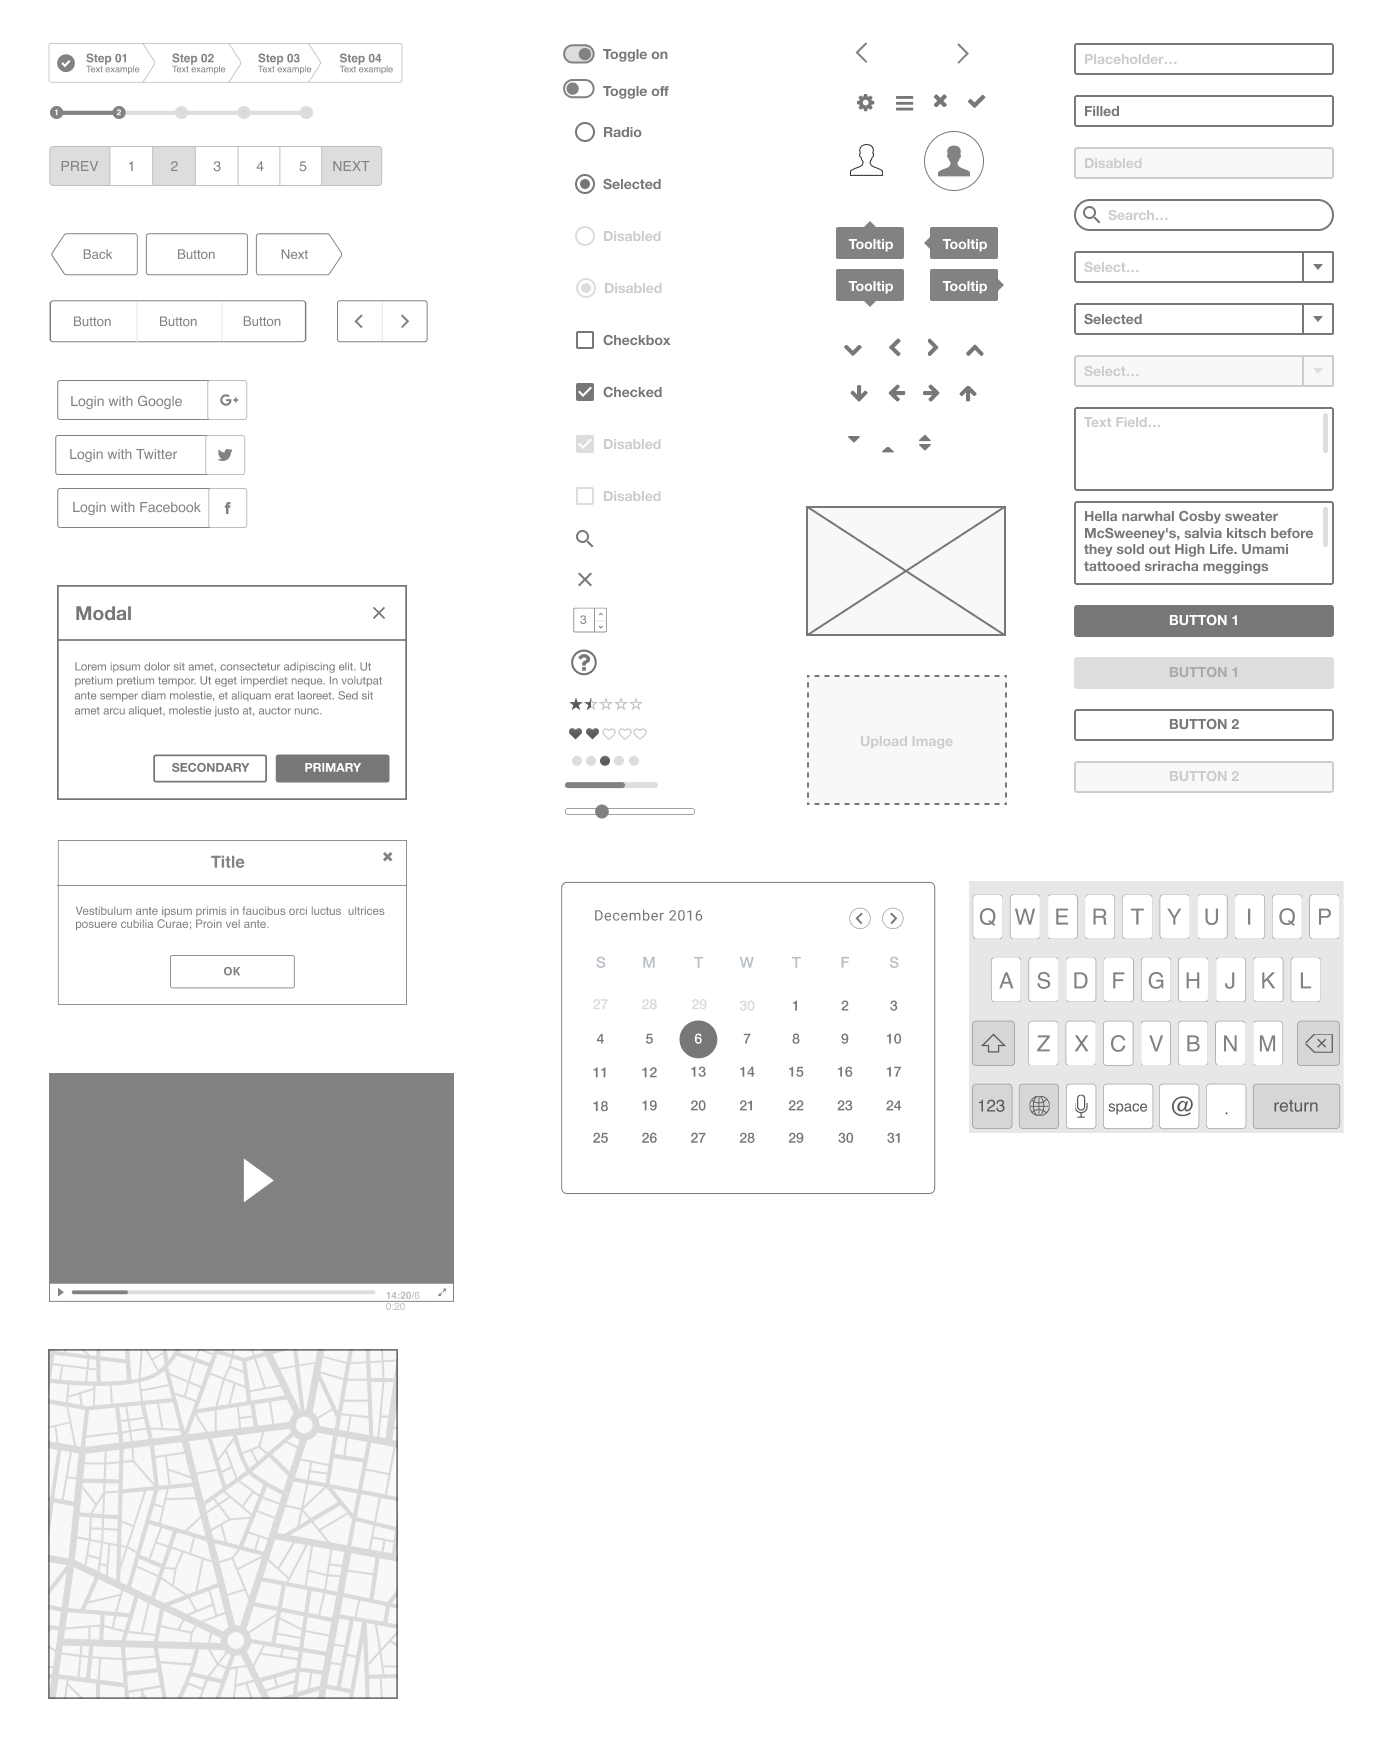 Ironhack Free Wireframe UI Kit - Use this wireframe kit to make your first steps as a UX/UI Designer using Figma. This kit contains useful bits and pieces, UI elements, and Interface components to rapidly build your designs, convey your ideas or test.